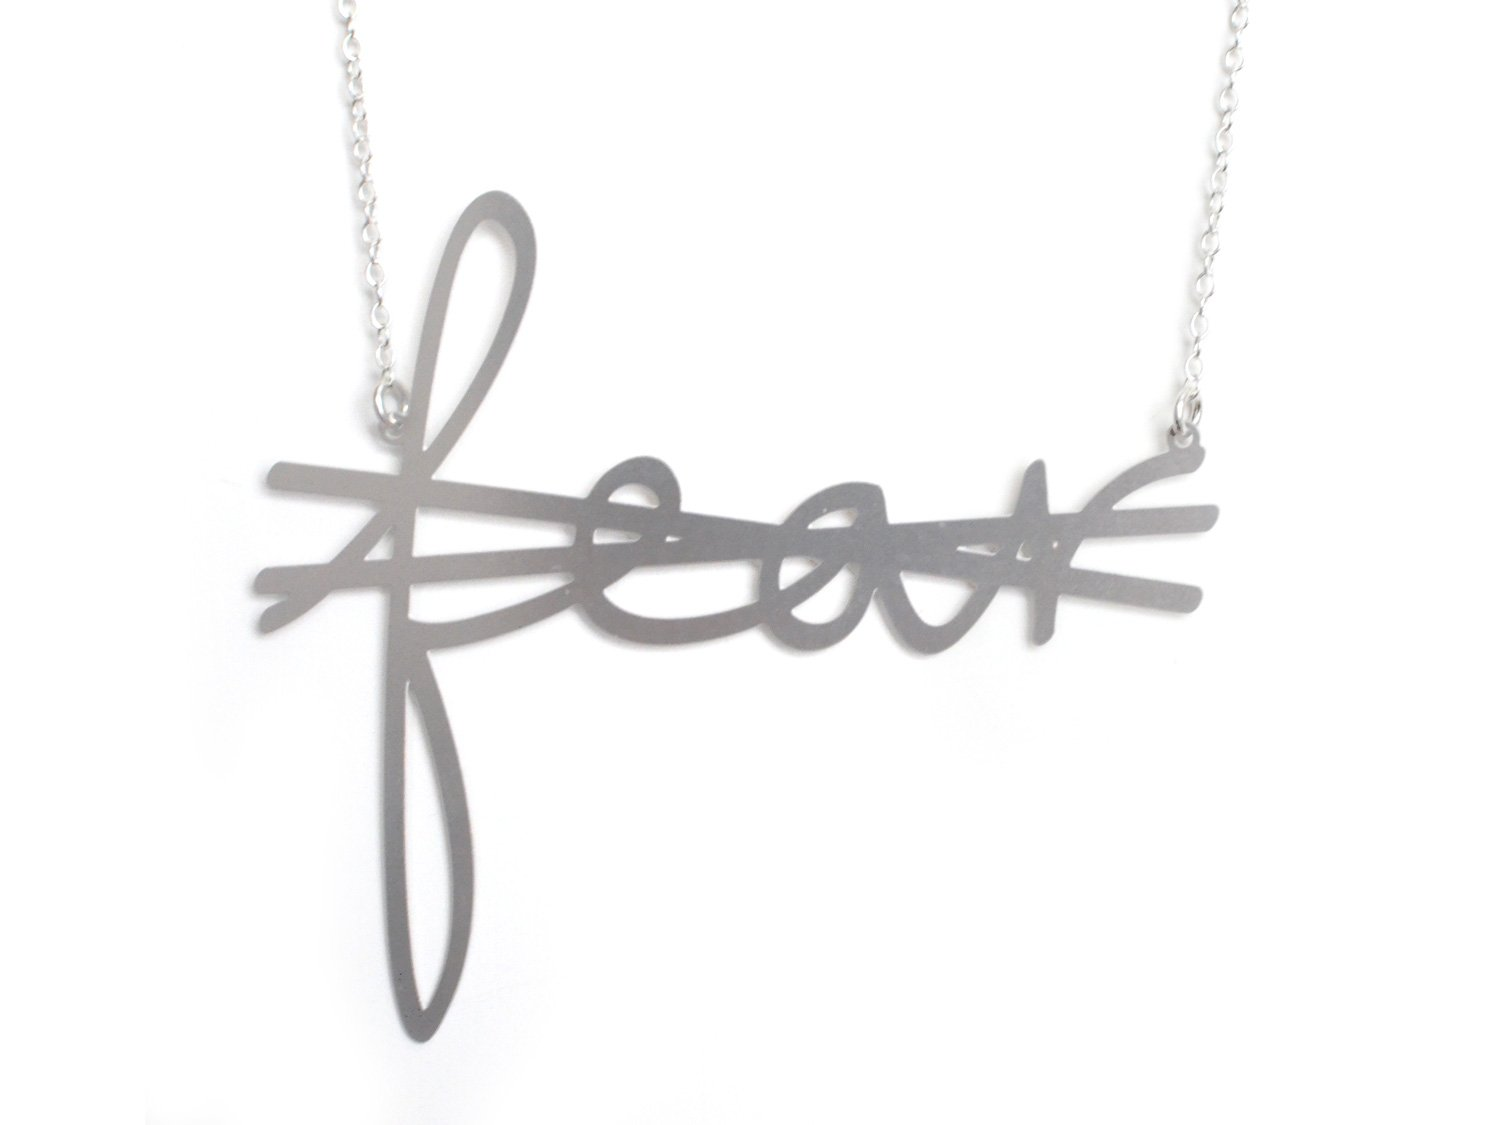 Crossout Fear - XX {{ product.type }} - Brevity Jewelry - Made in USA - Affordable gold and silver necklaces